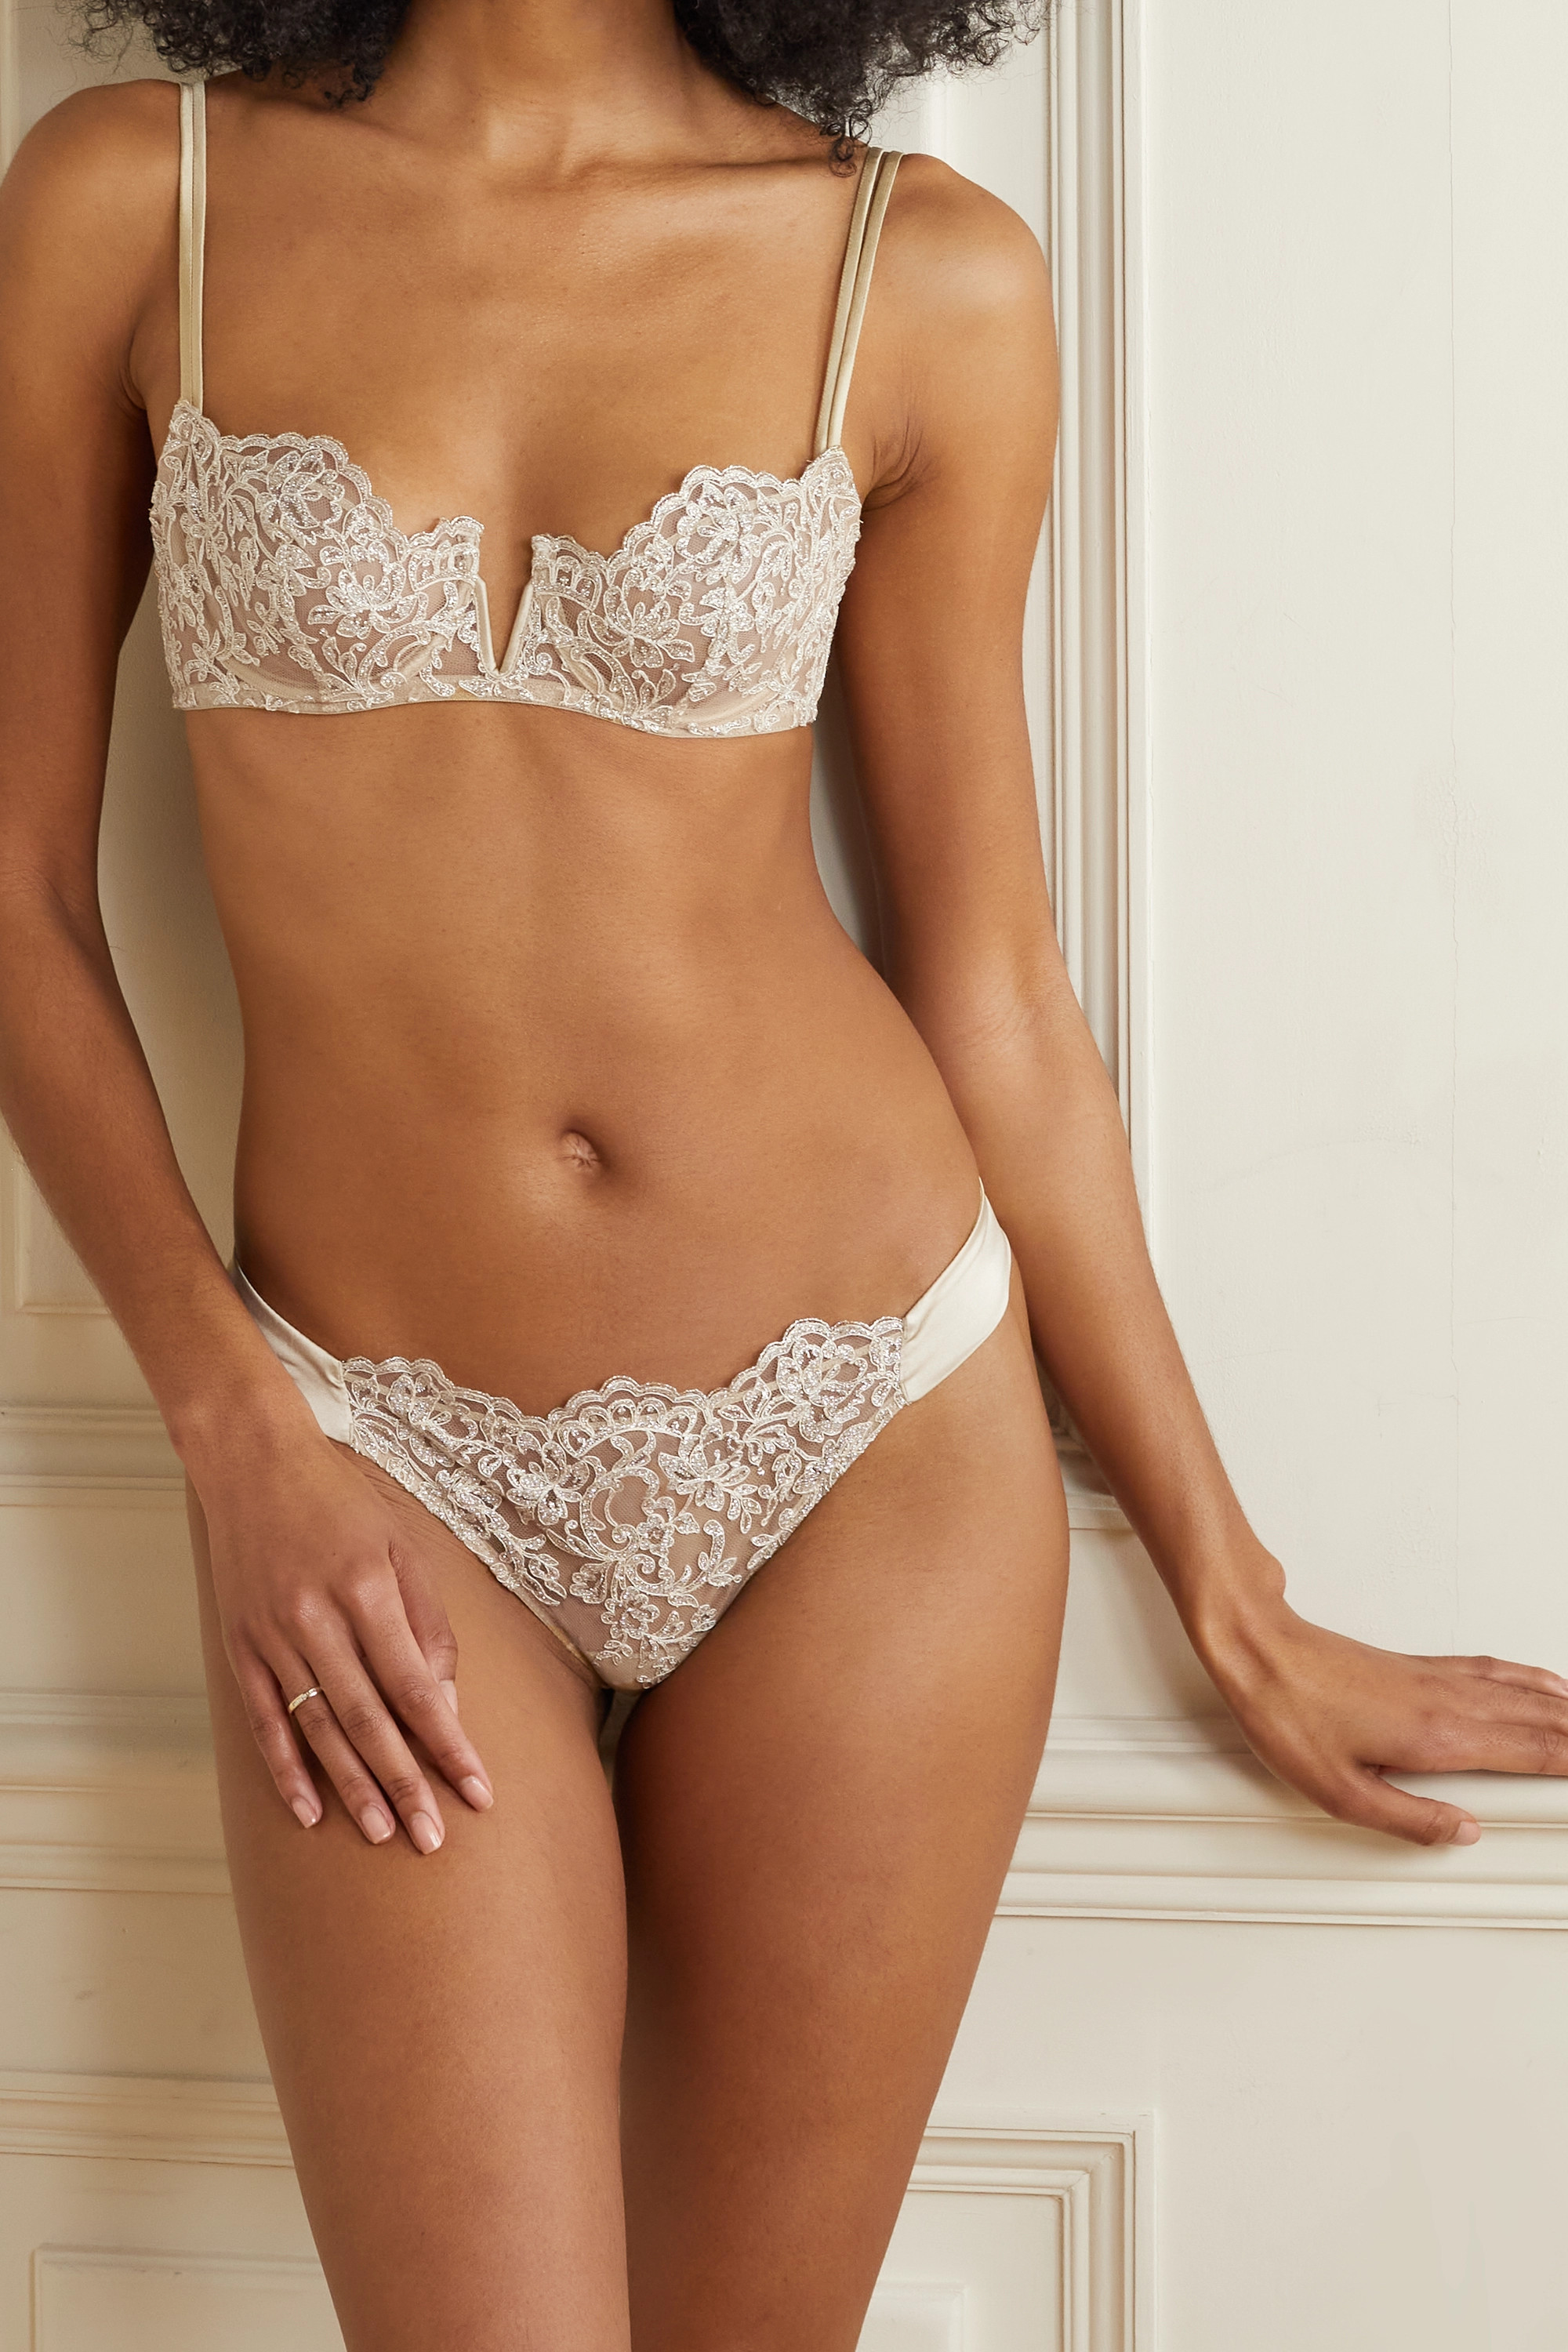 I.D. SARRIERI In The Mood For Love metallic corded lace, stretch-jersey and satin briefs